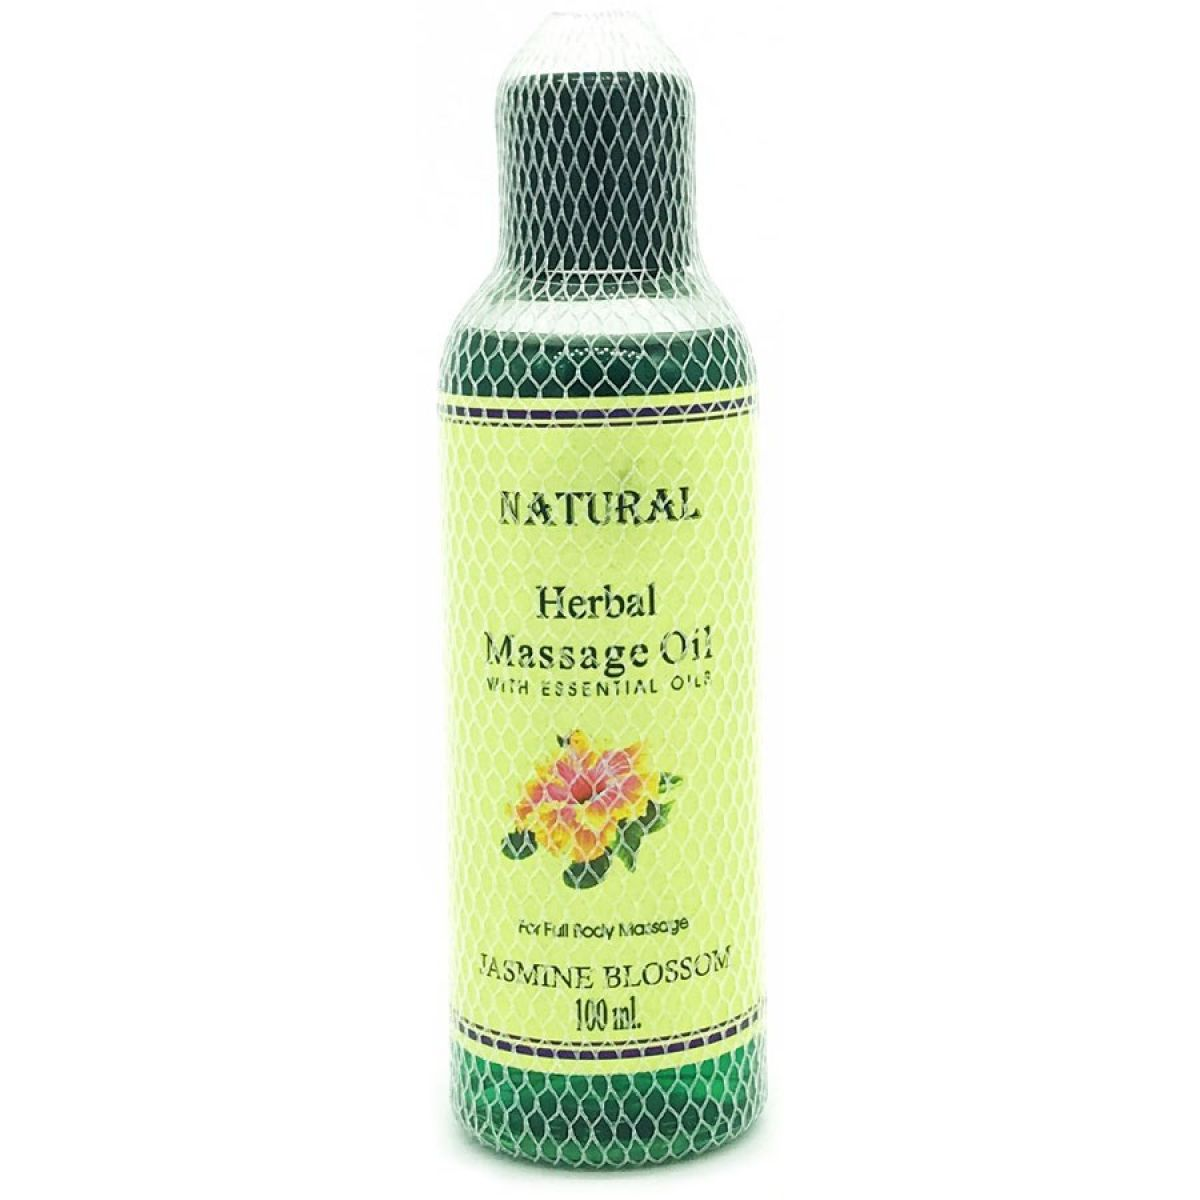 Natural Herbal Massage Oil (Jasmine Blossom) 100ml